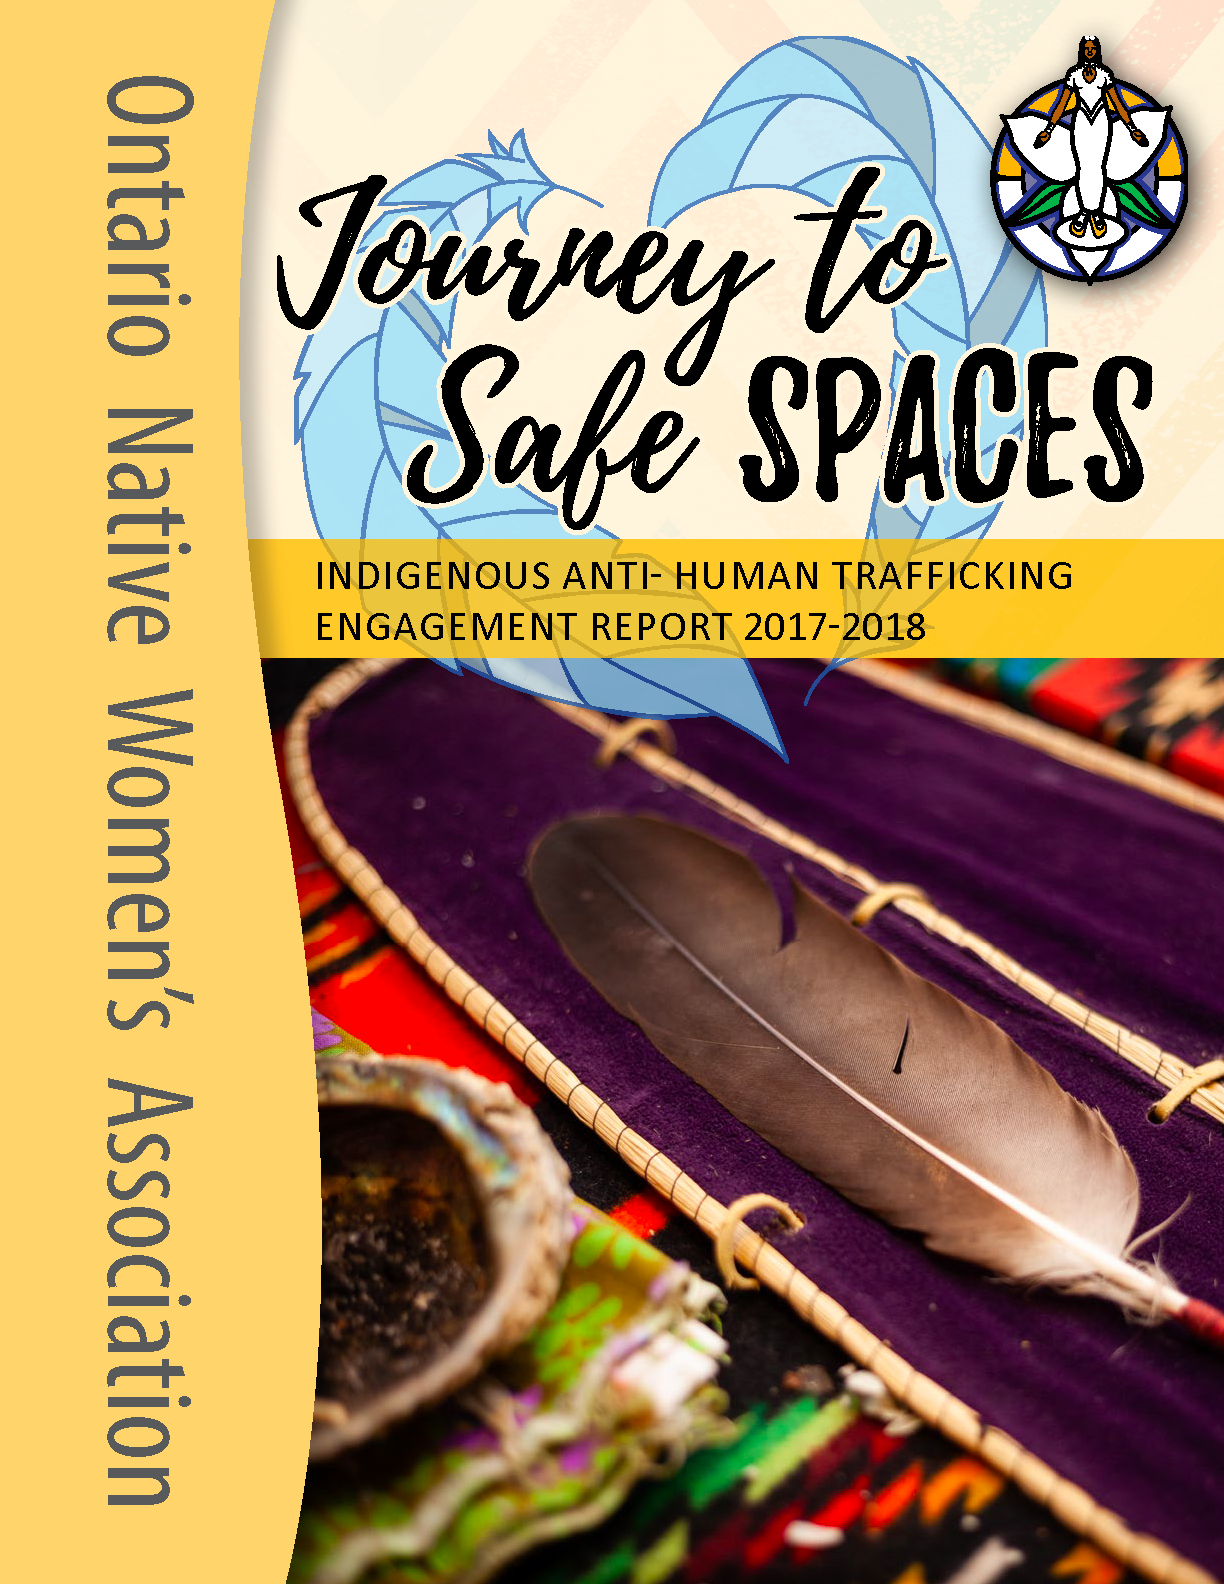 Ontario Native Women's Association, Indigenous Anti-Human Trafficking Engagement Report, 2017-2018